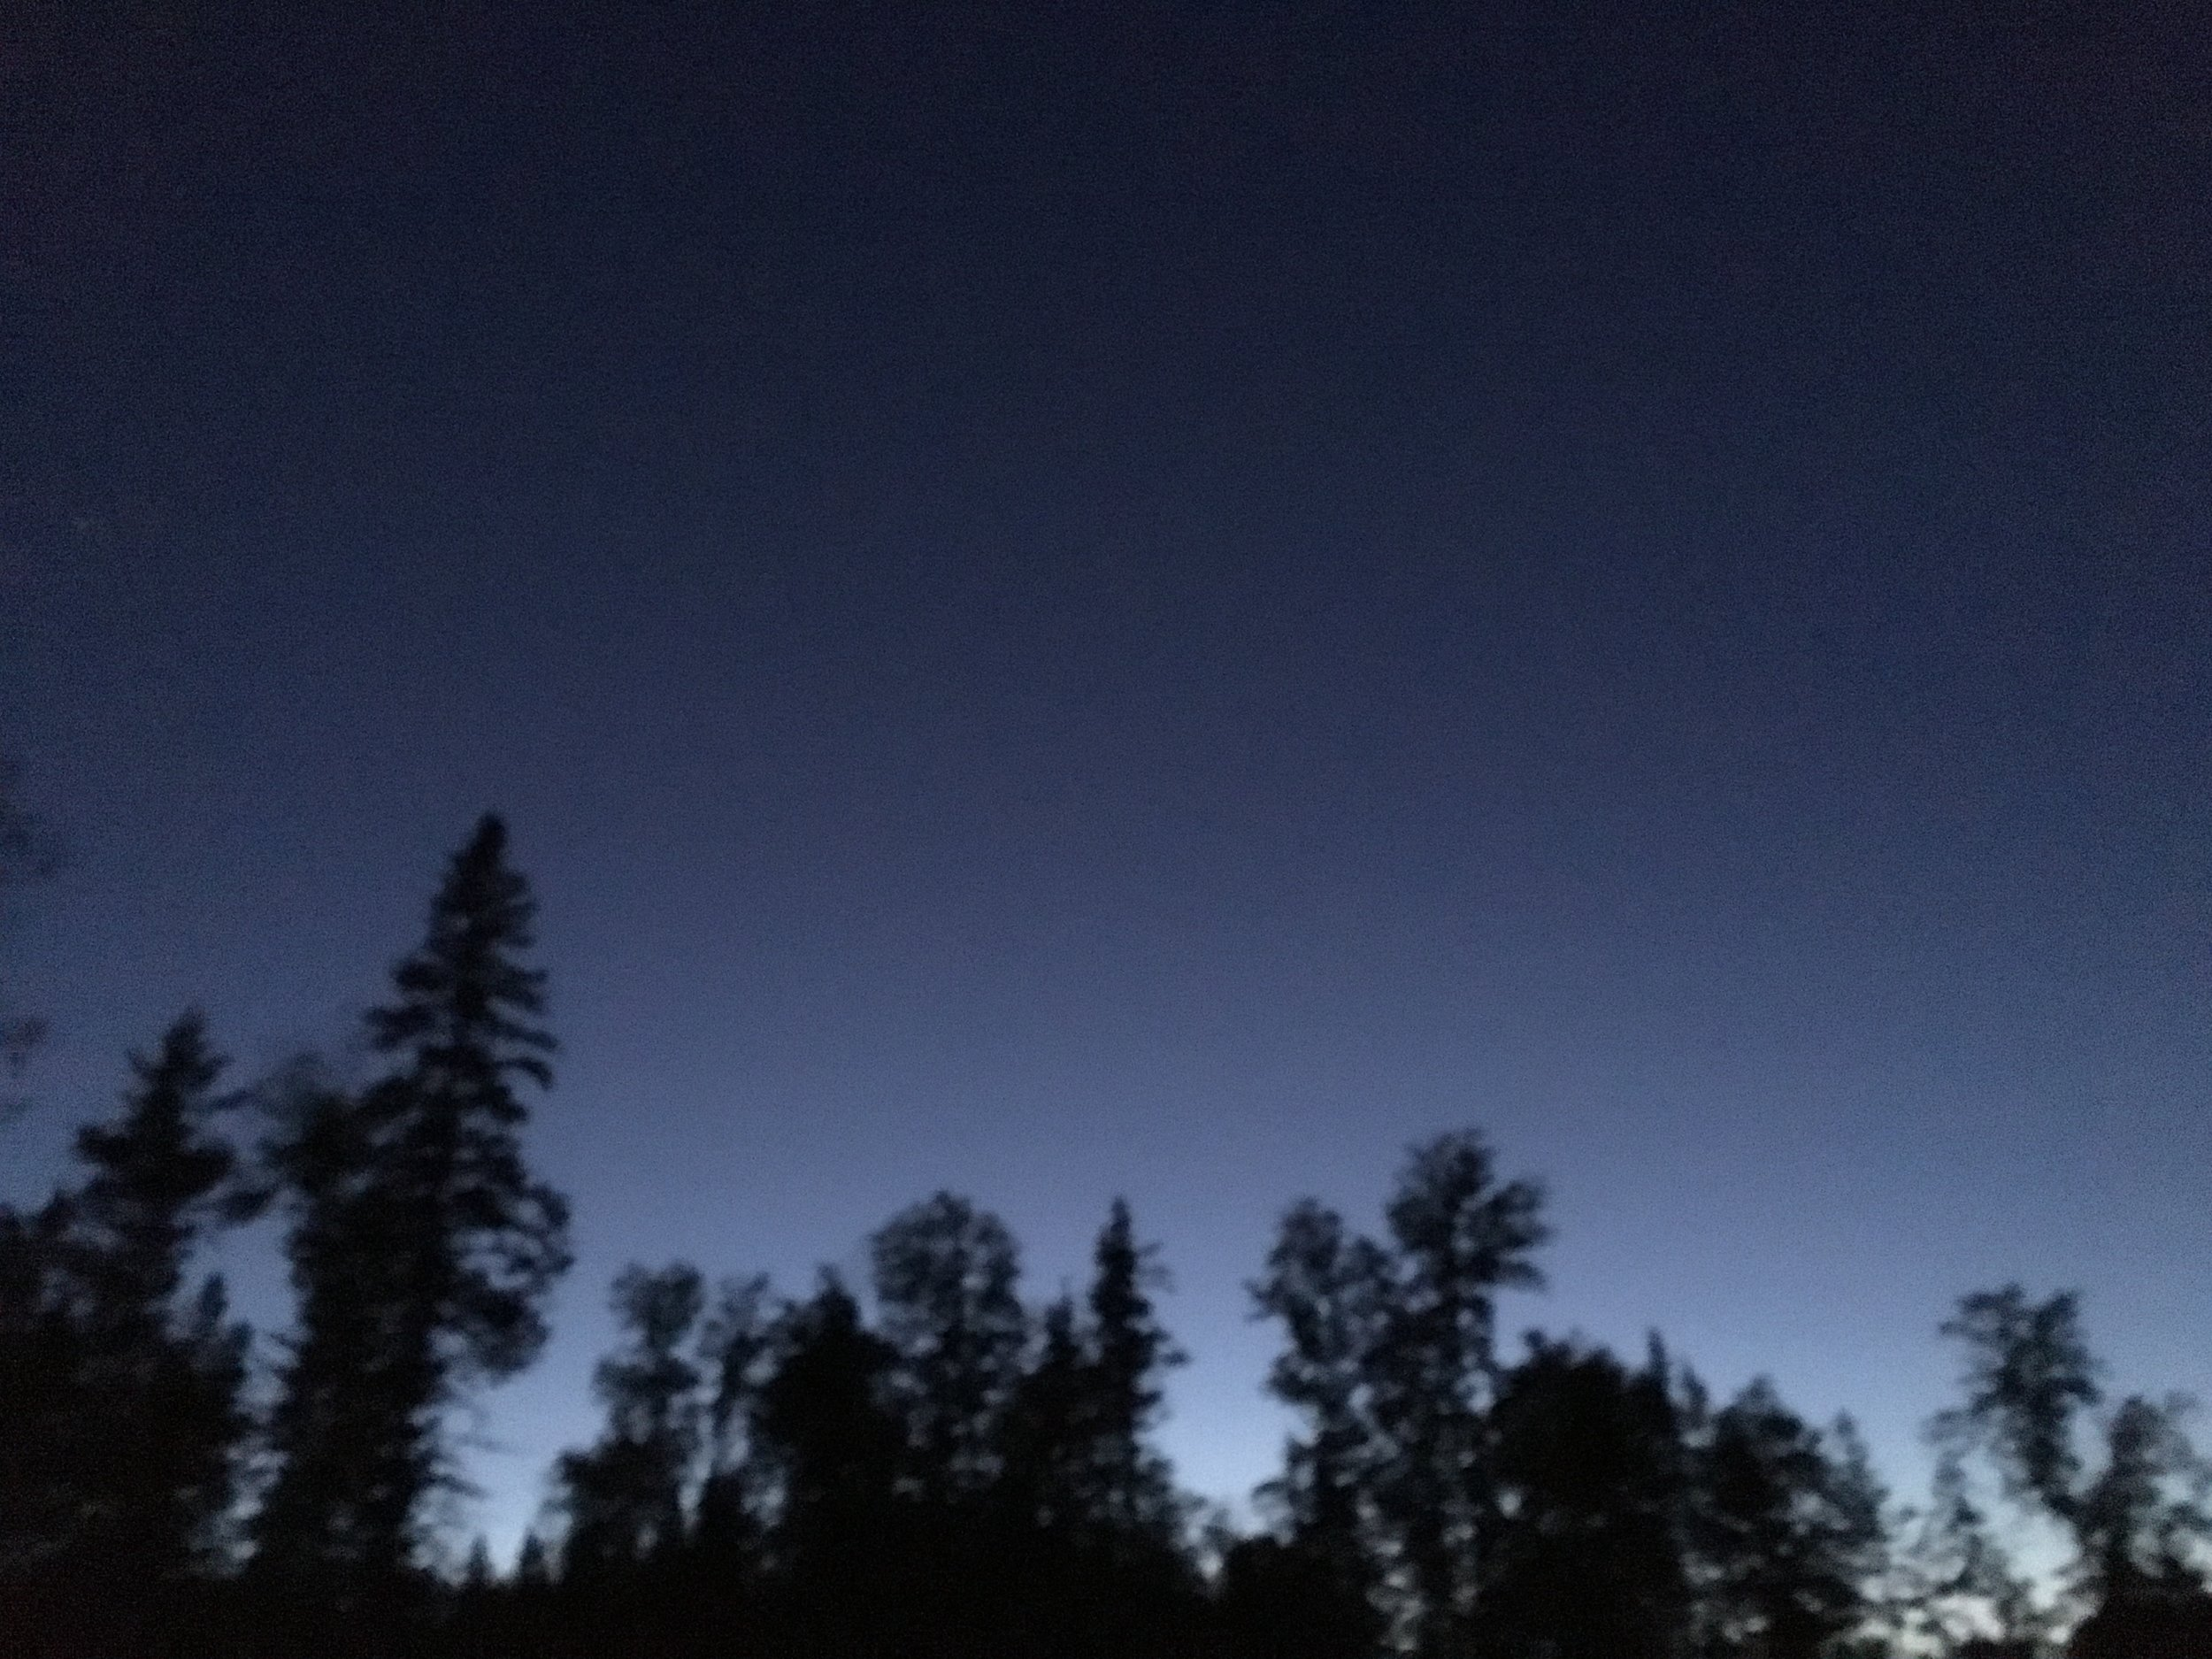 Clear weather at night means conditions are optimal for star gazing.